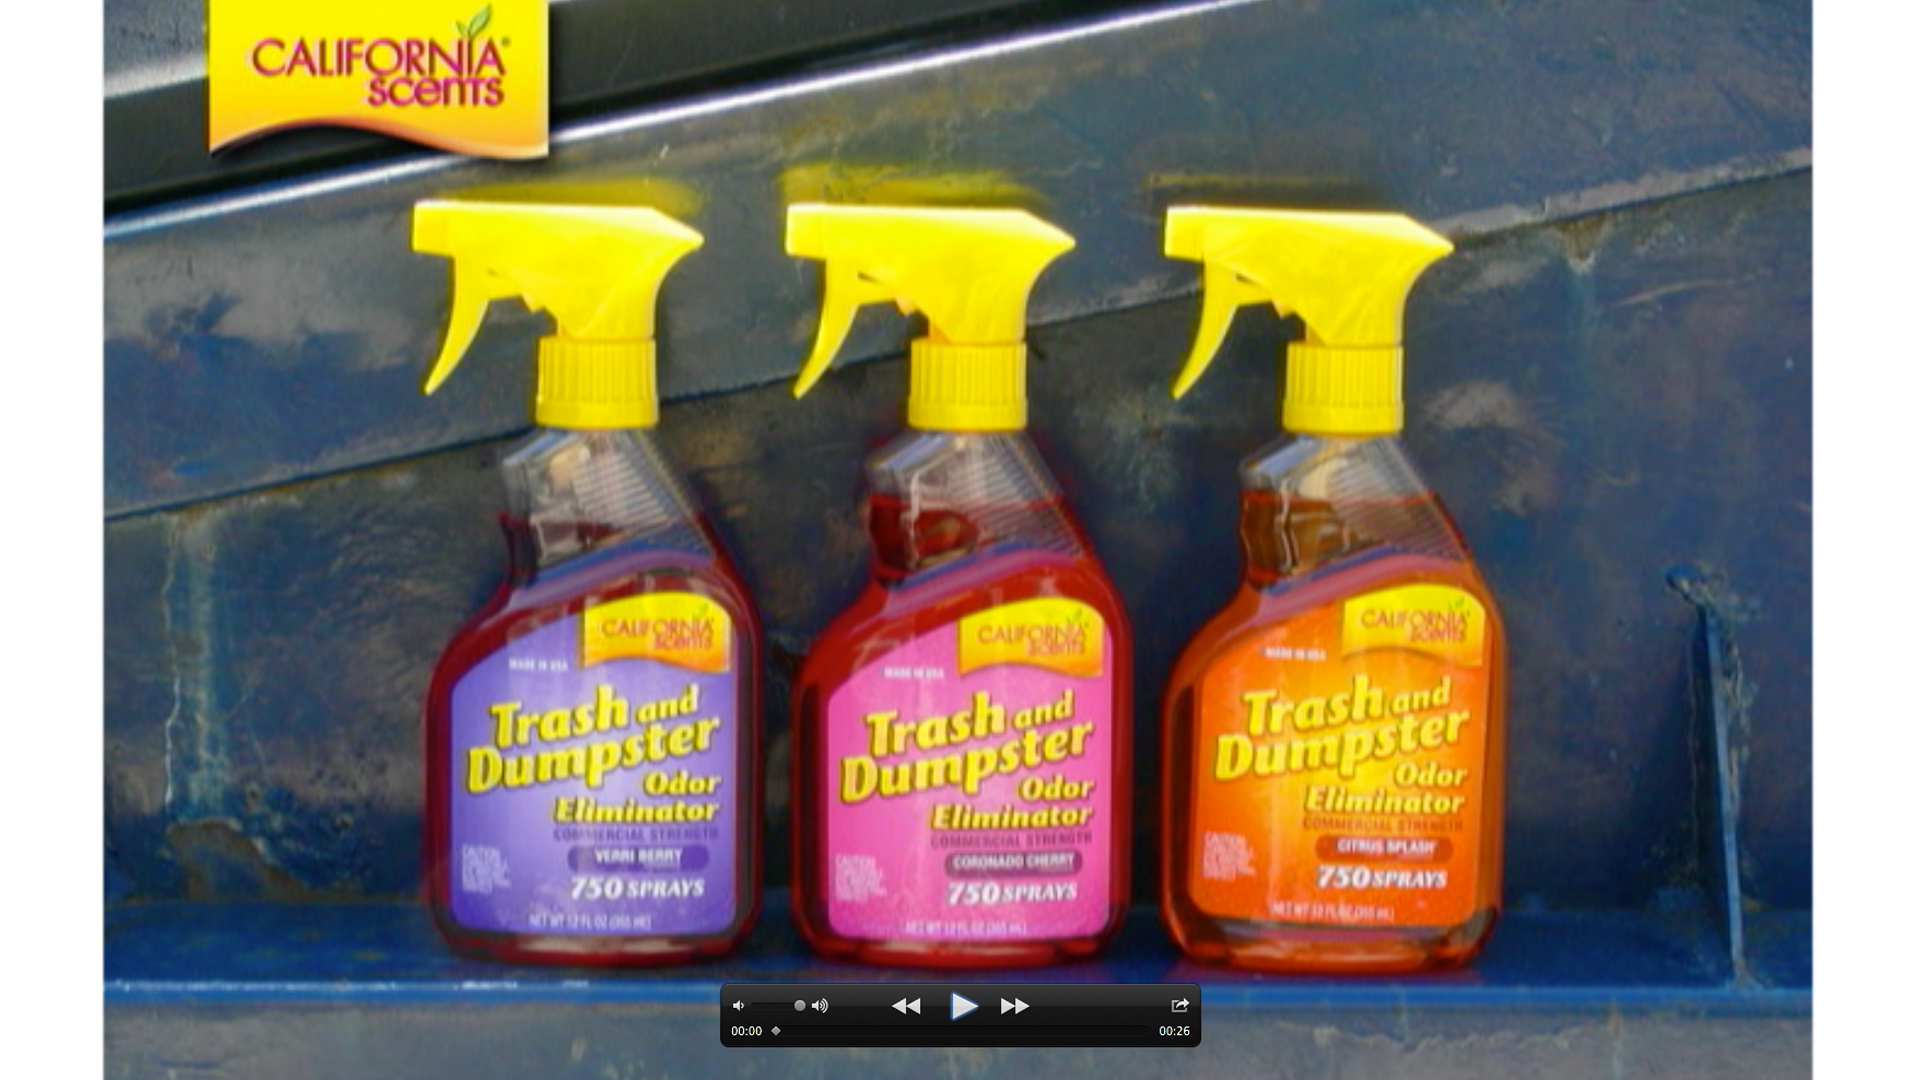 California Scents, consumer  dumpster spray label and bottle